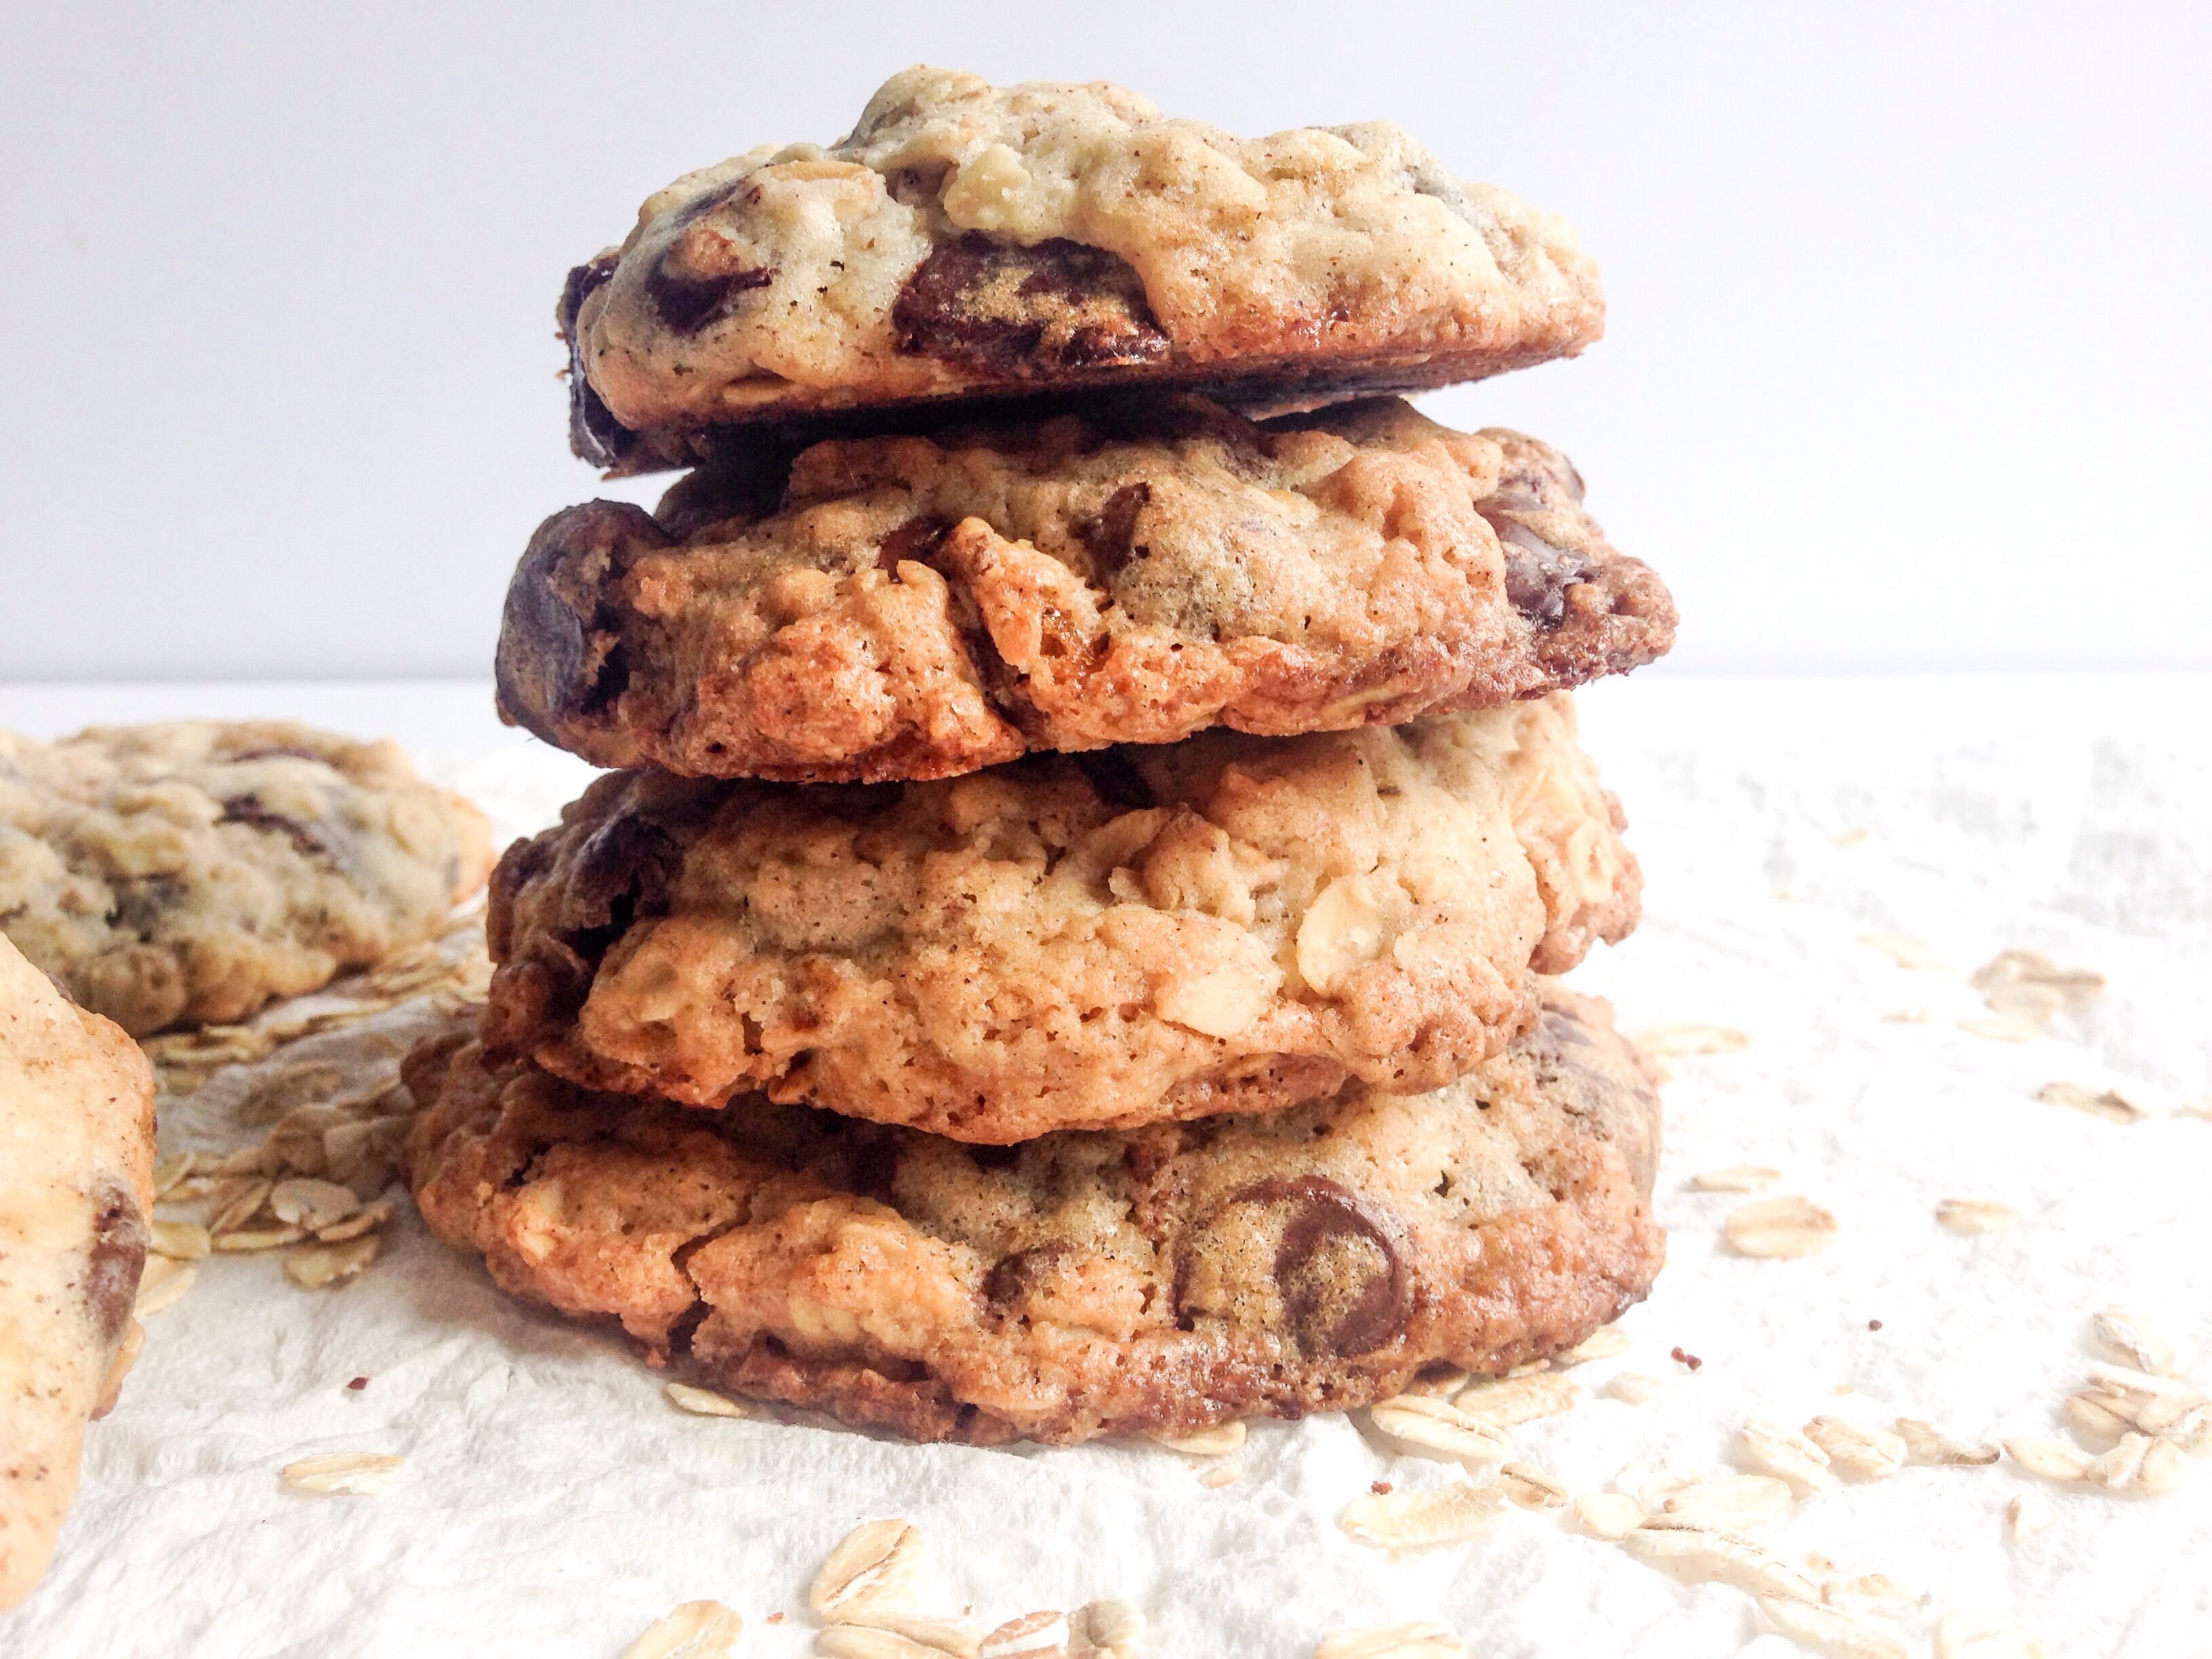 Chocolate Chunk Oats and Raisins Cookie